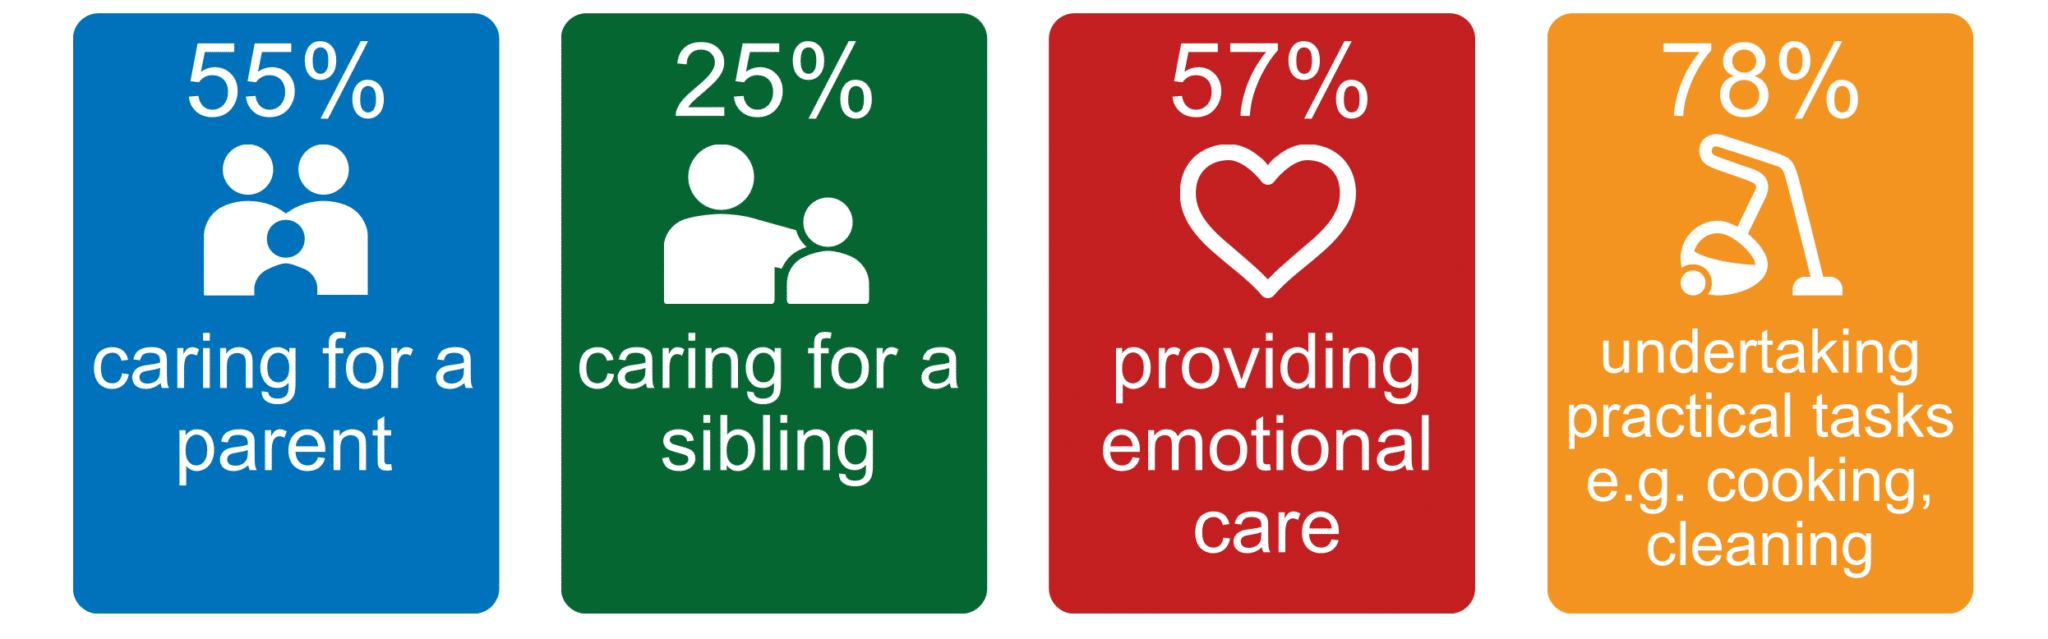 55% care for a parent, 25% care for a sibling, 57% provide emotional care, 78% do practical tasks like cooking and cleaning